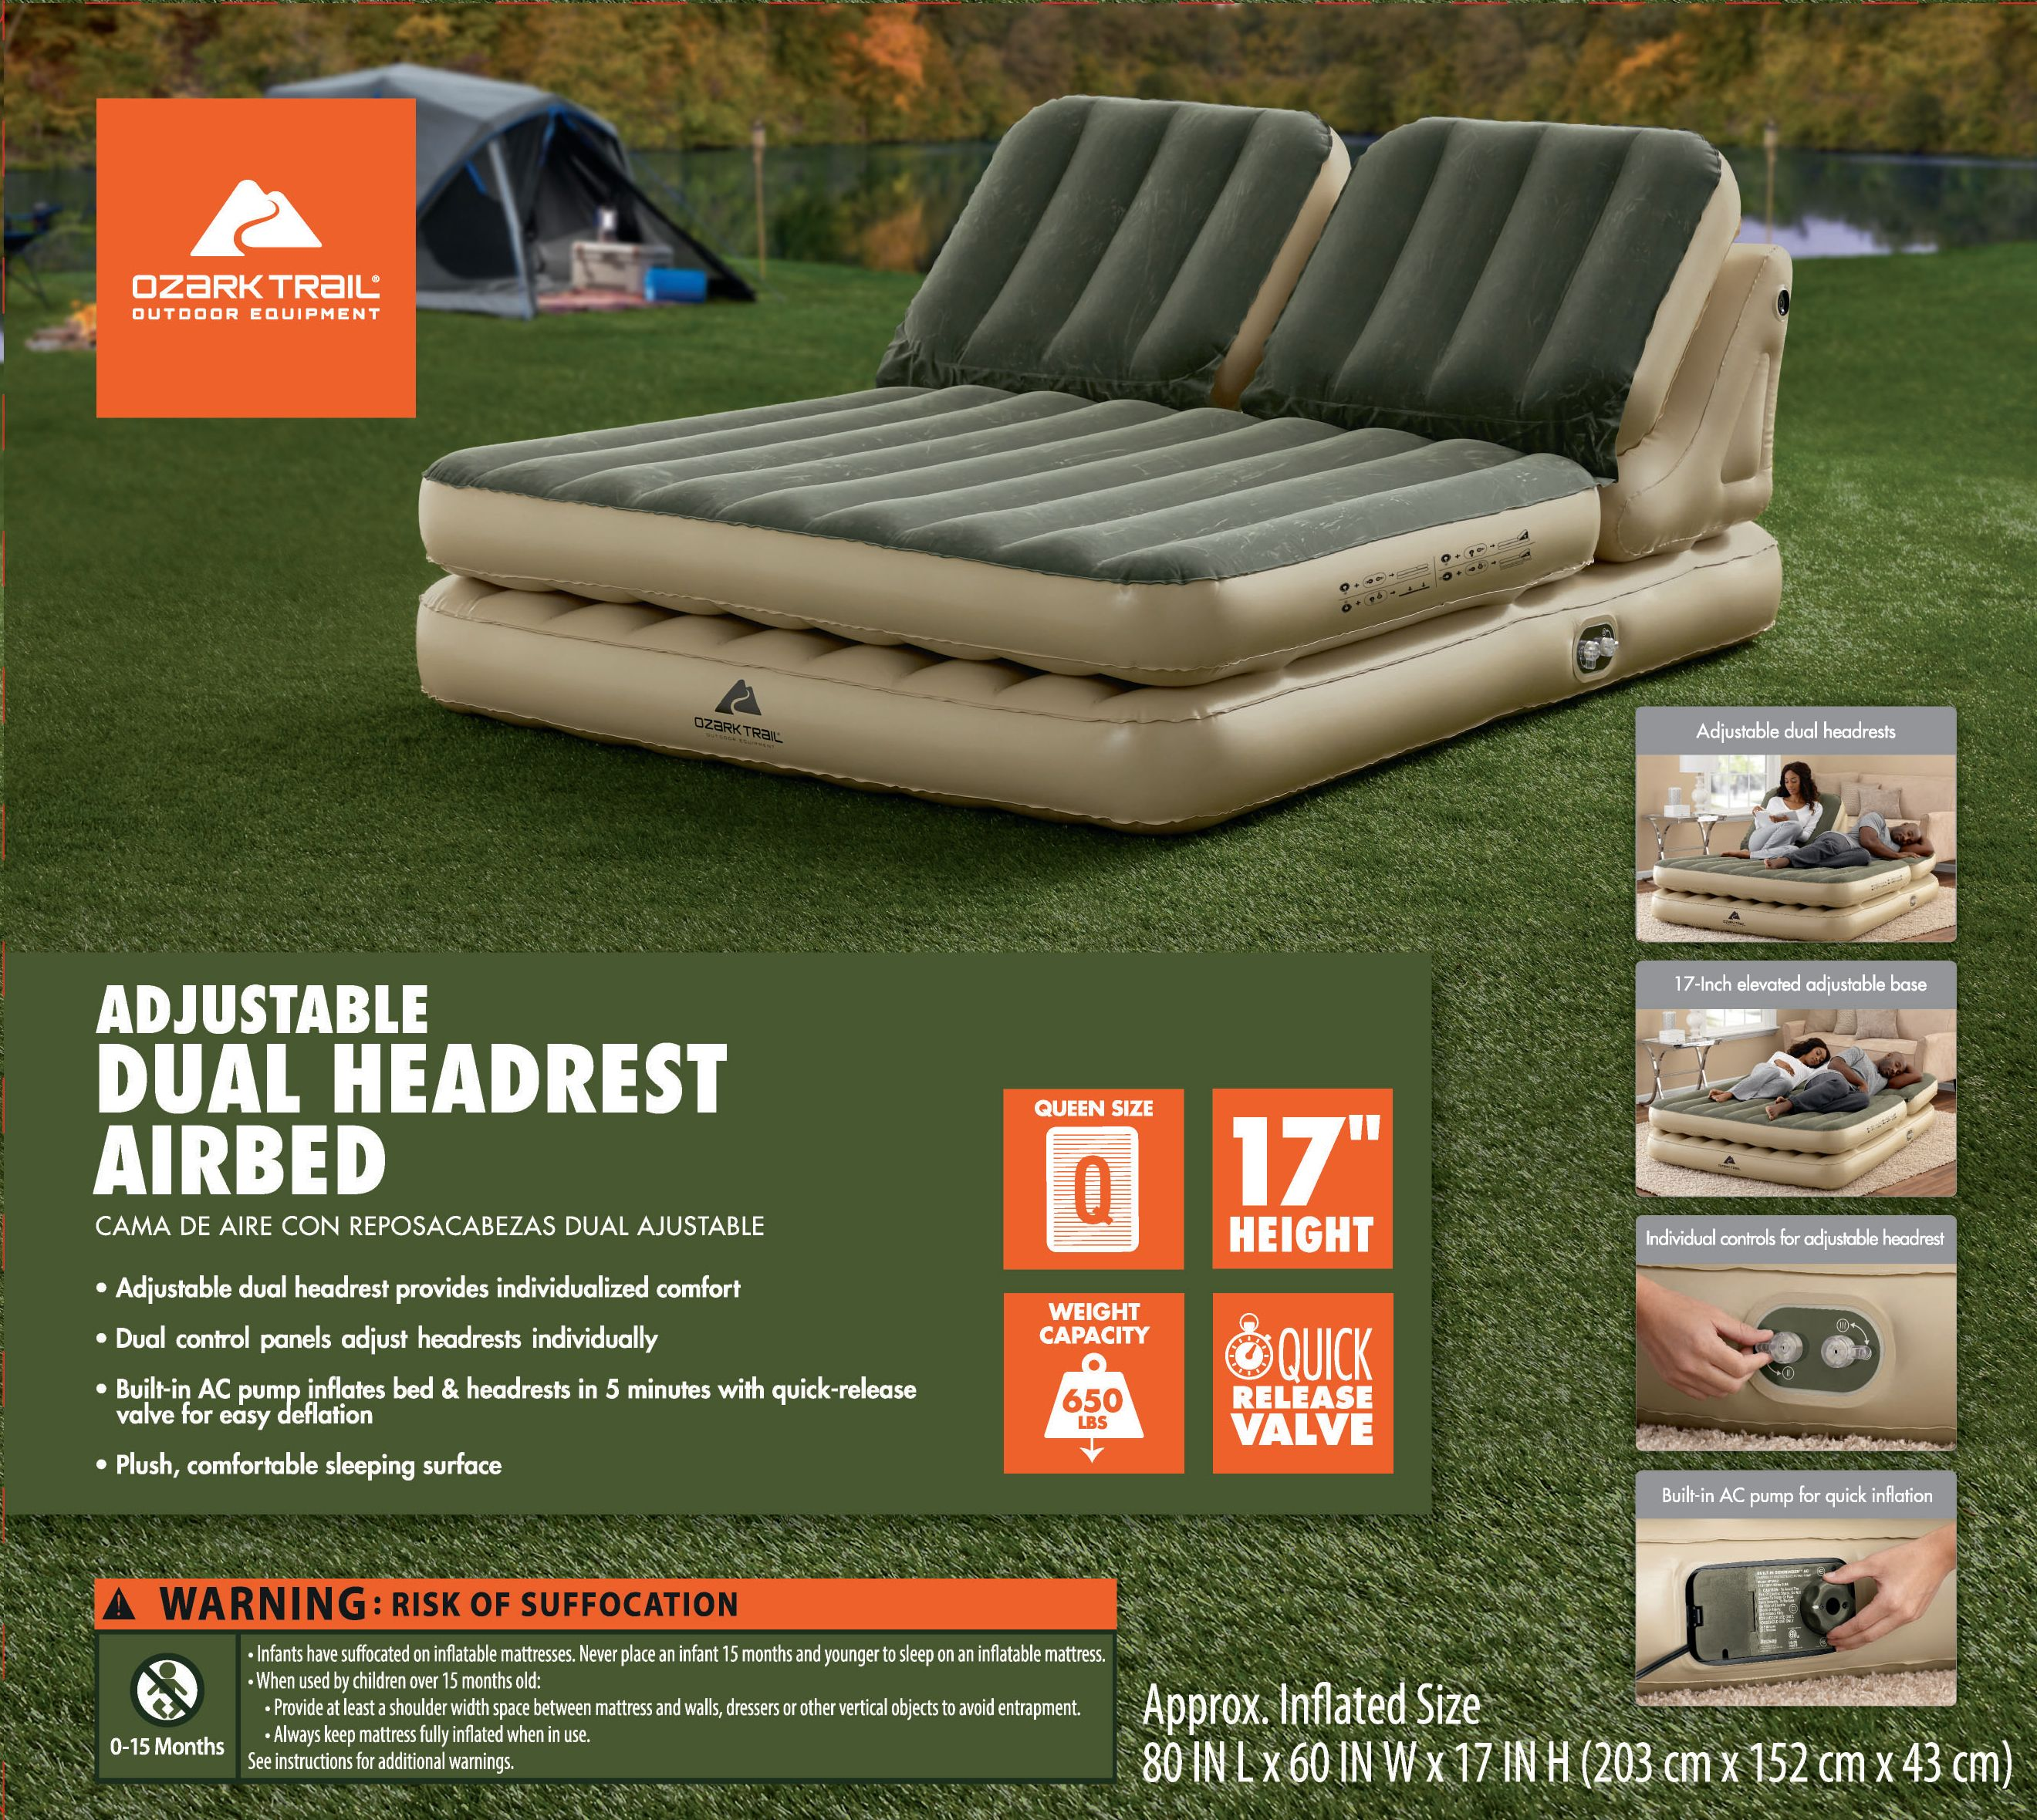 Ozark Trail Adjustable Dual Headrest Airbed Queen Size W